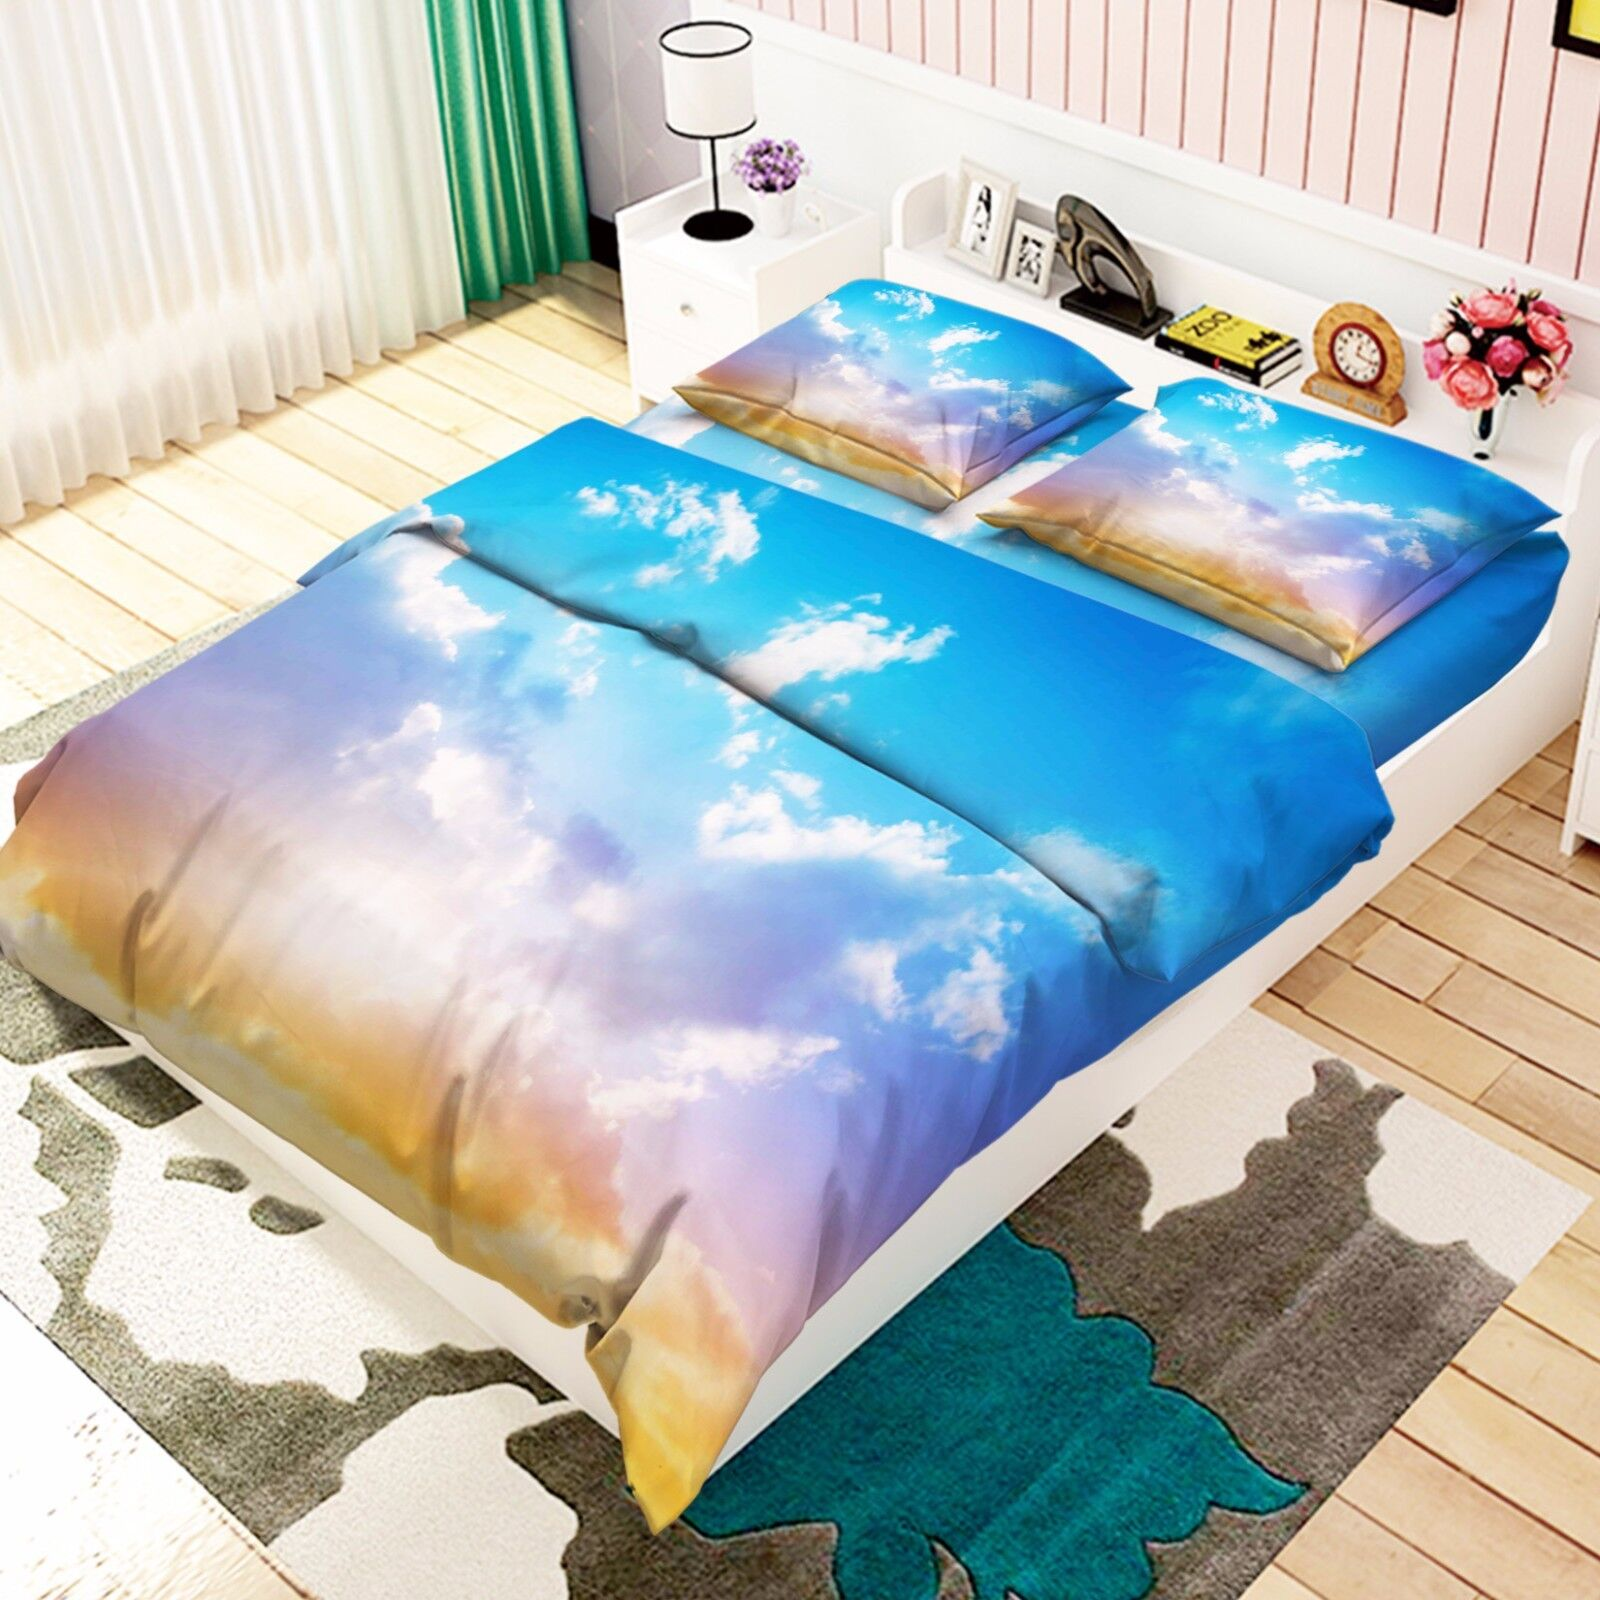 3D View Clouds 876 Bed Pillowcases Quilt Duvet Cover Set Single Queen UK Kyra